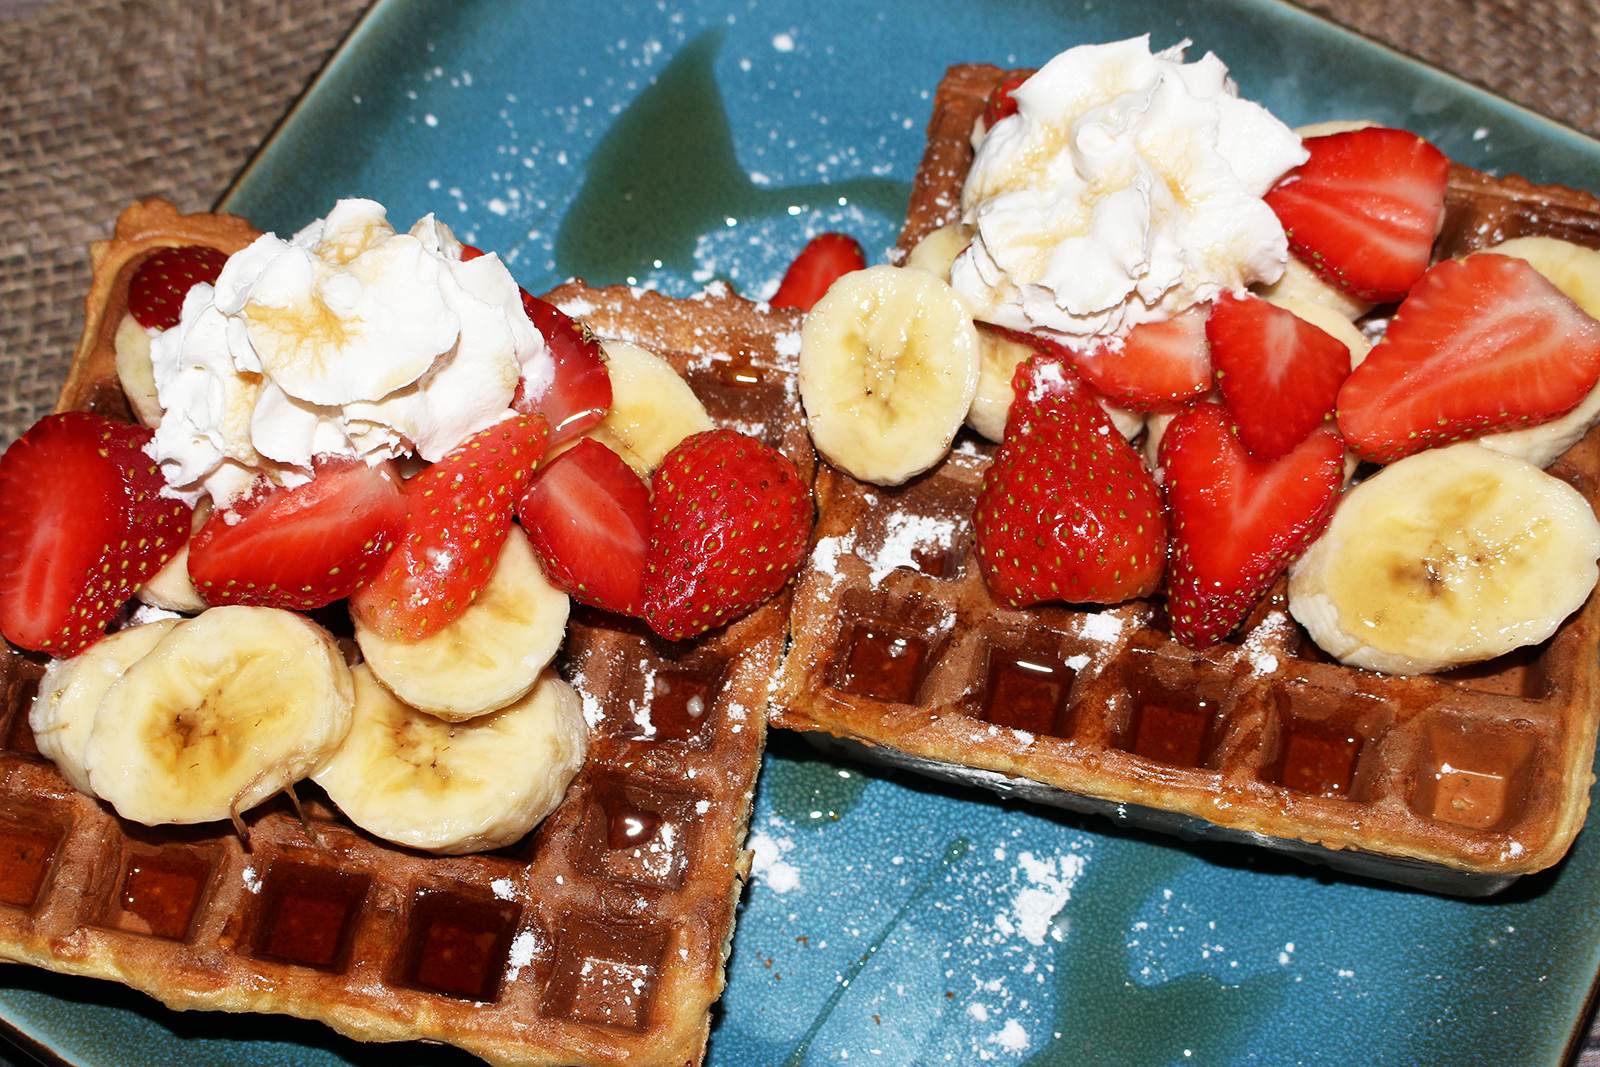 Take Waffles To A Whole New Level With The Smart Waffle From Breville